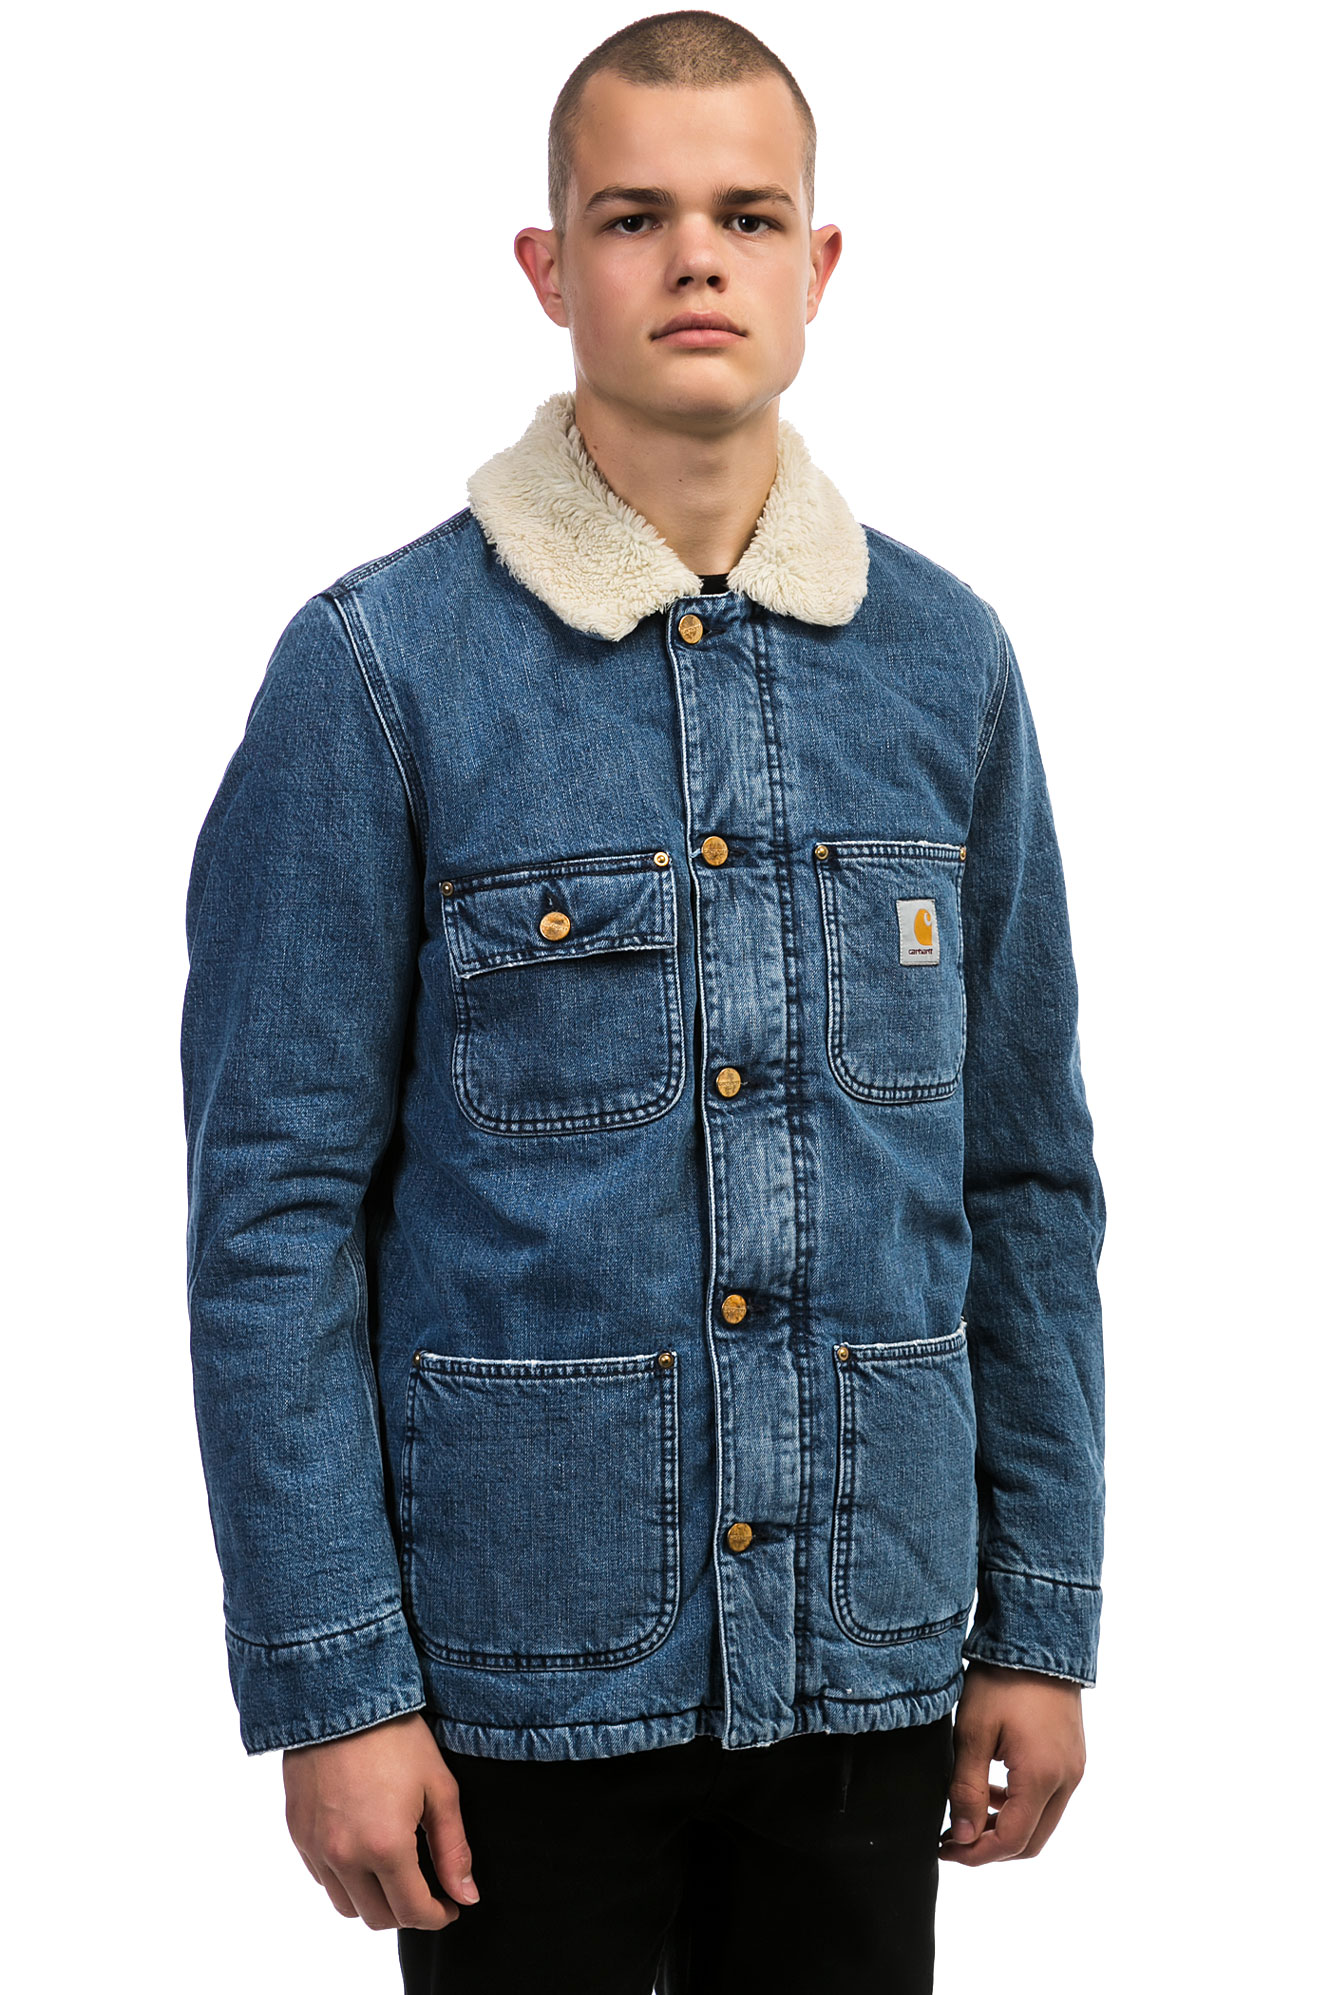 Carhartt WIP Fairmount Jacket (blue stone washed) buy at